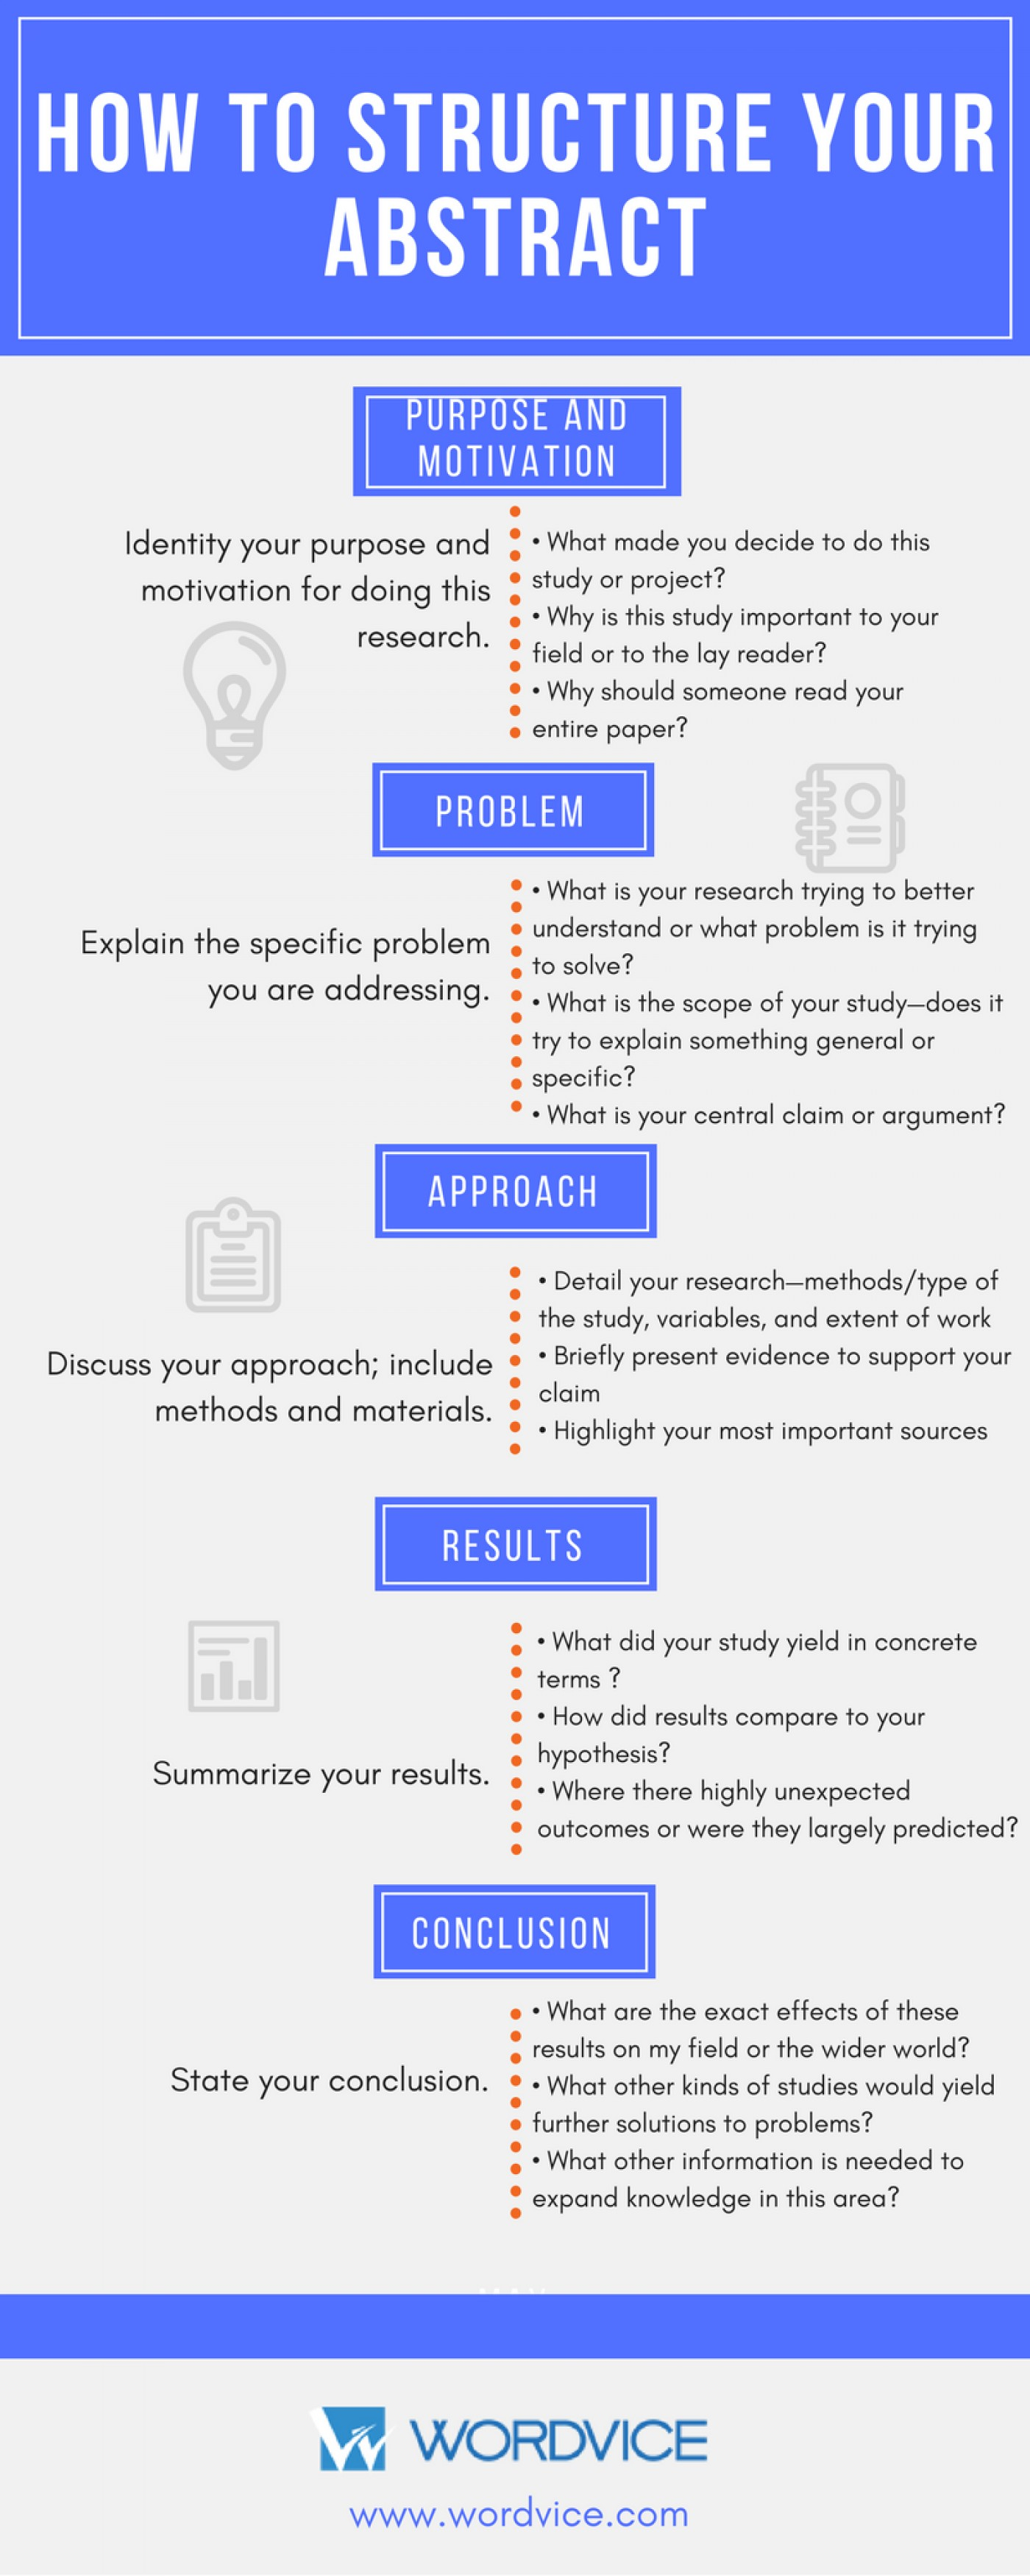 003 Research Paper Abstract How To Structure Your Unusual Format Introduction Writing Sample Pdf 1400